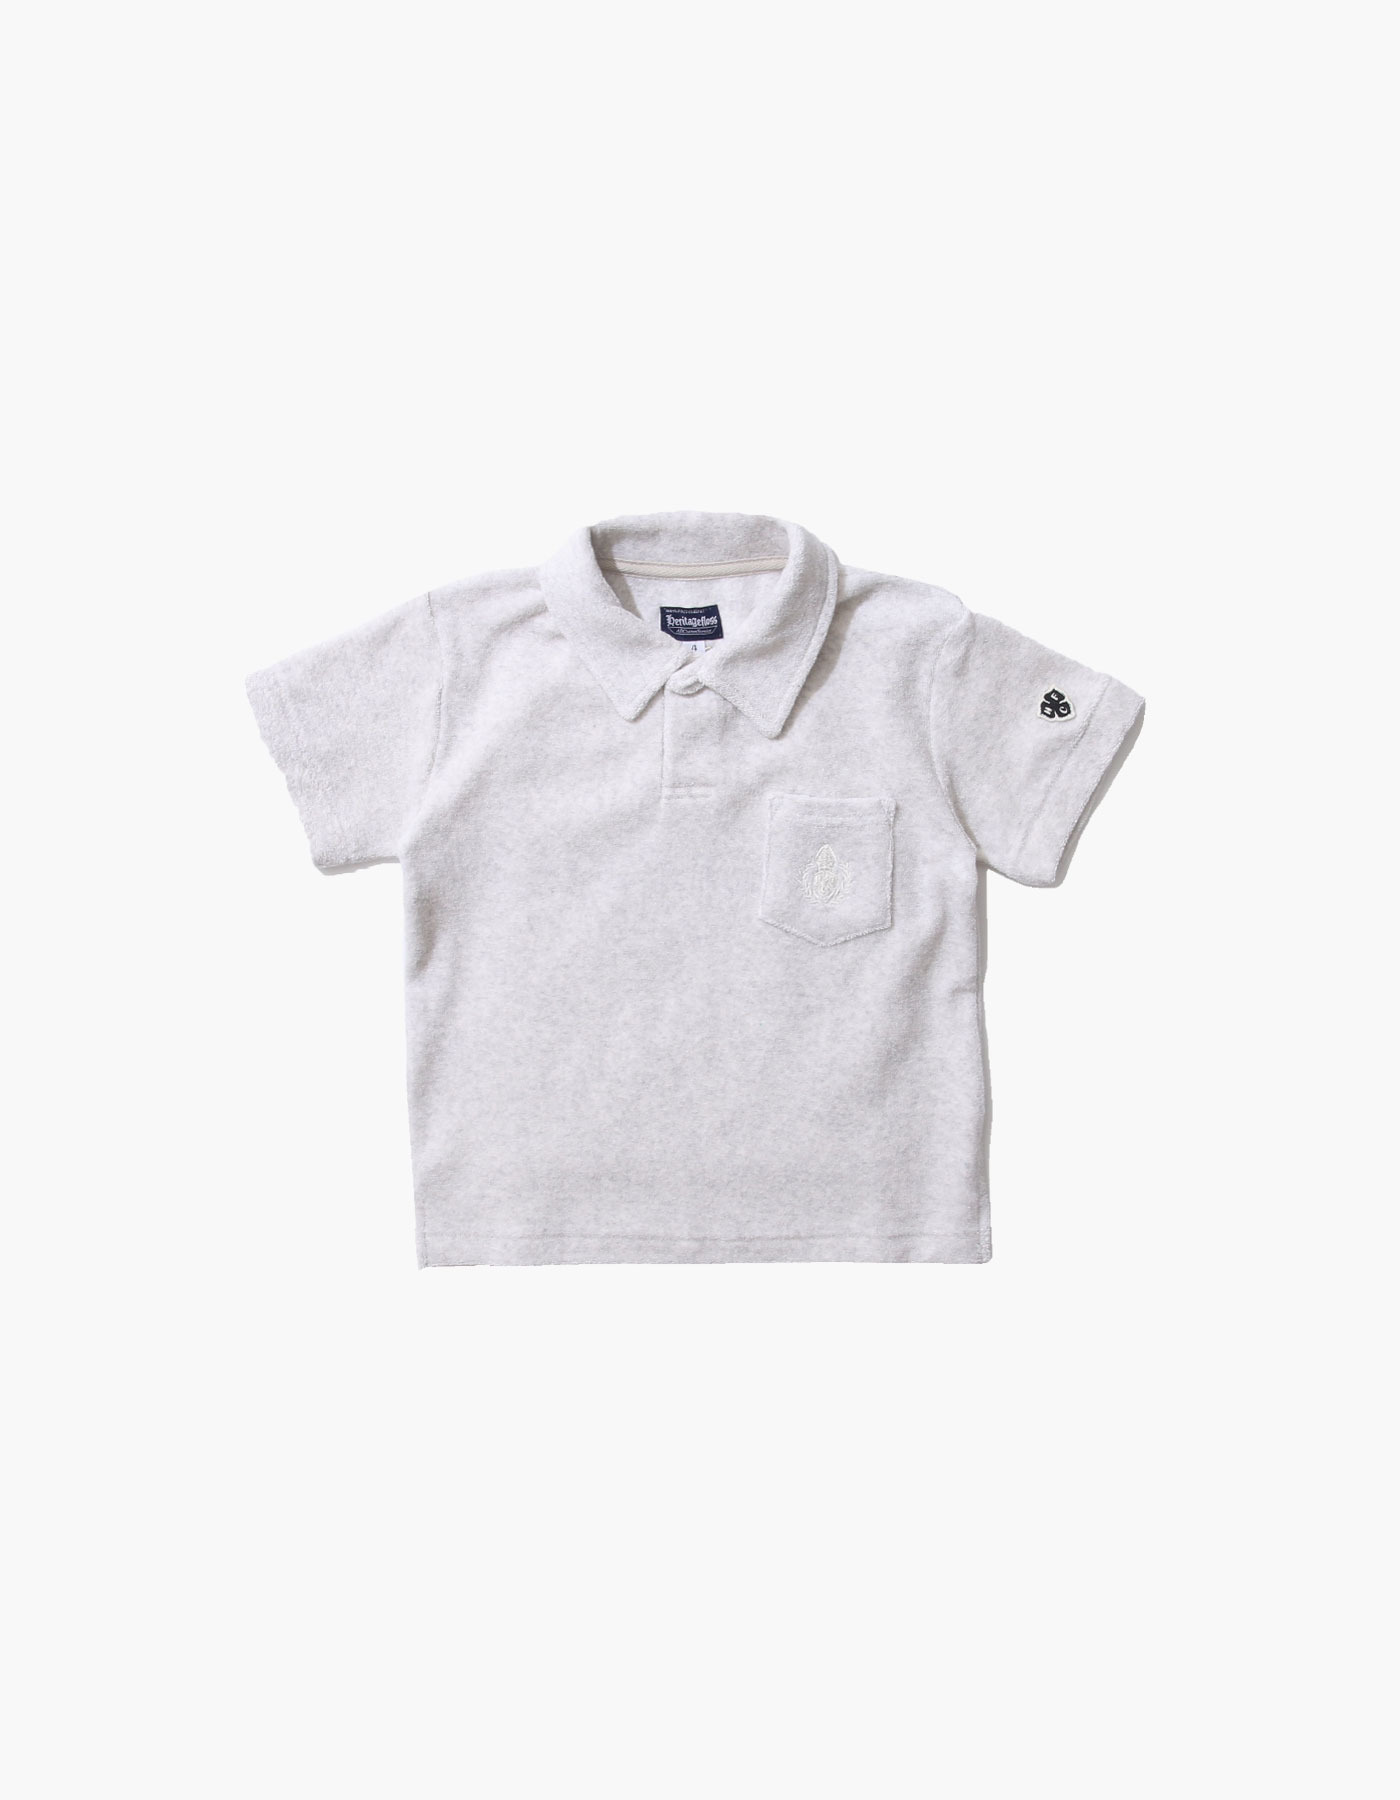 HFC CREST KIDS TOWEL POLO SHIRTS / M.GREY(1%)